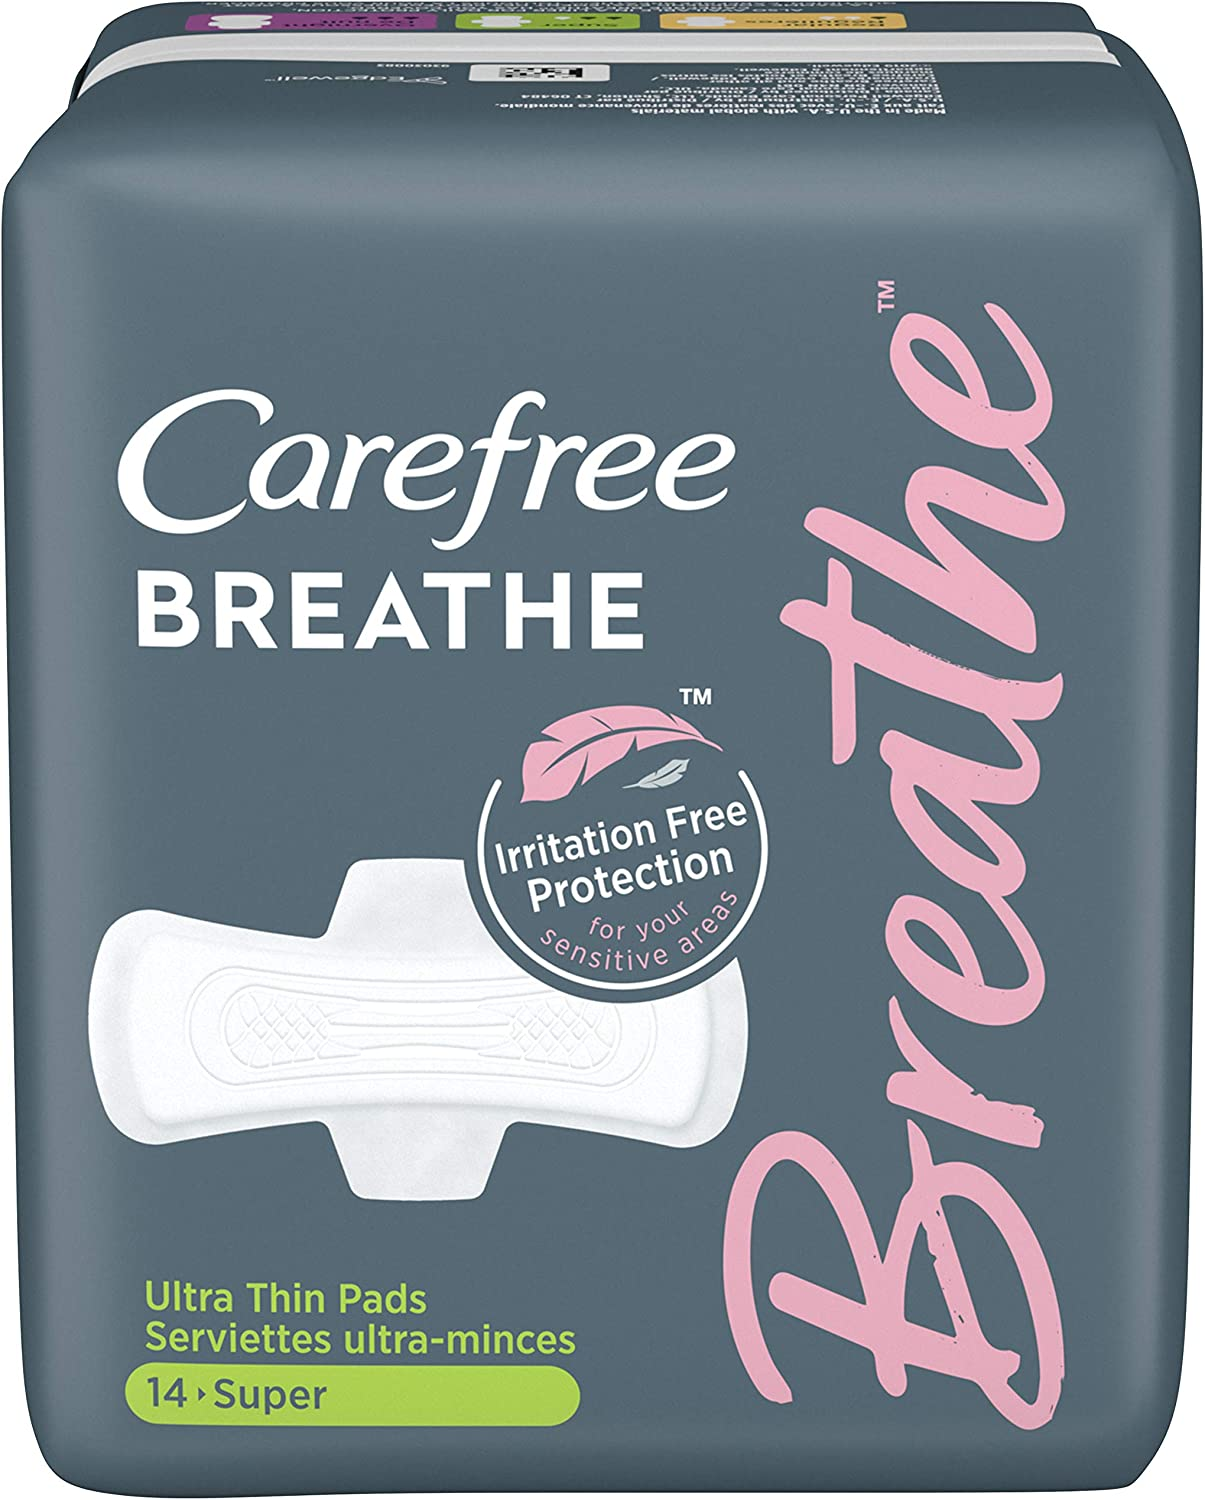 Carefree Breathe Ultra Thin Super Pads with Wings, Irritation-Free Protection, 14 Count - Pack of 8